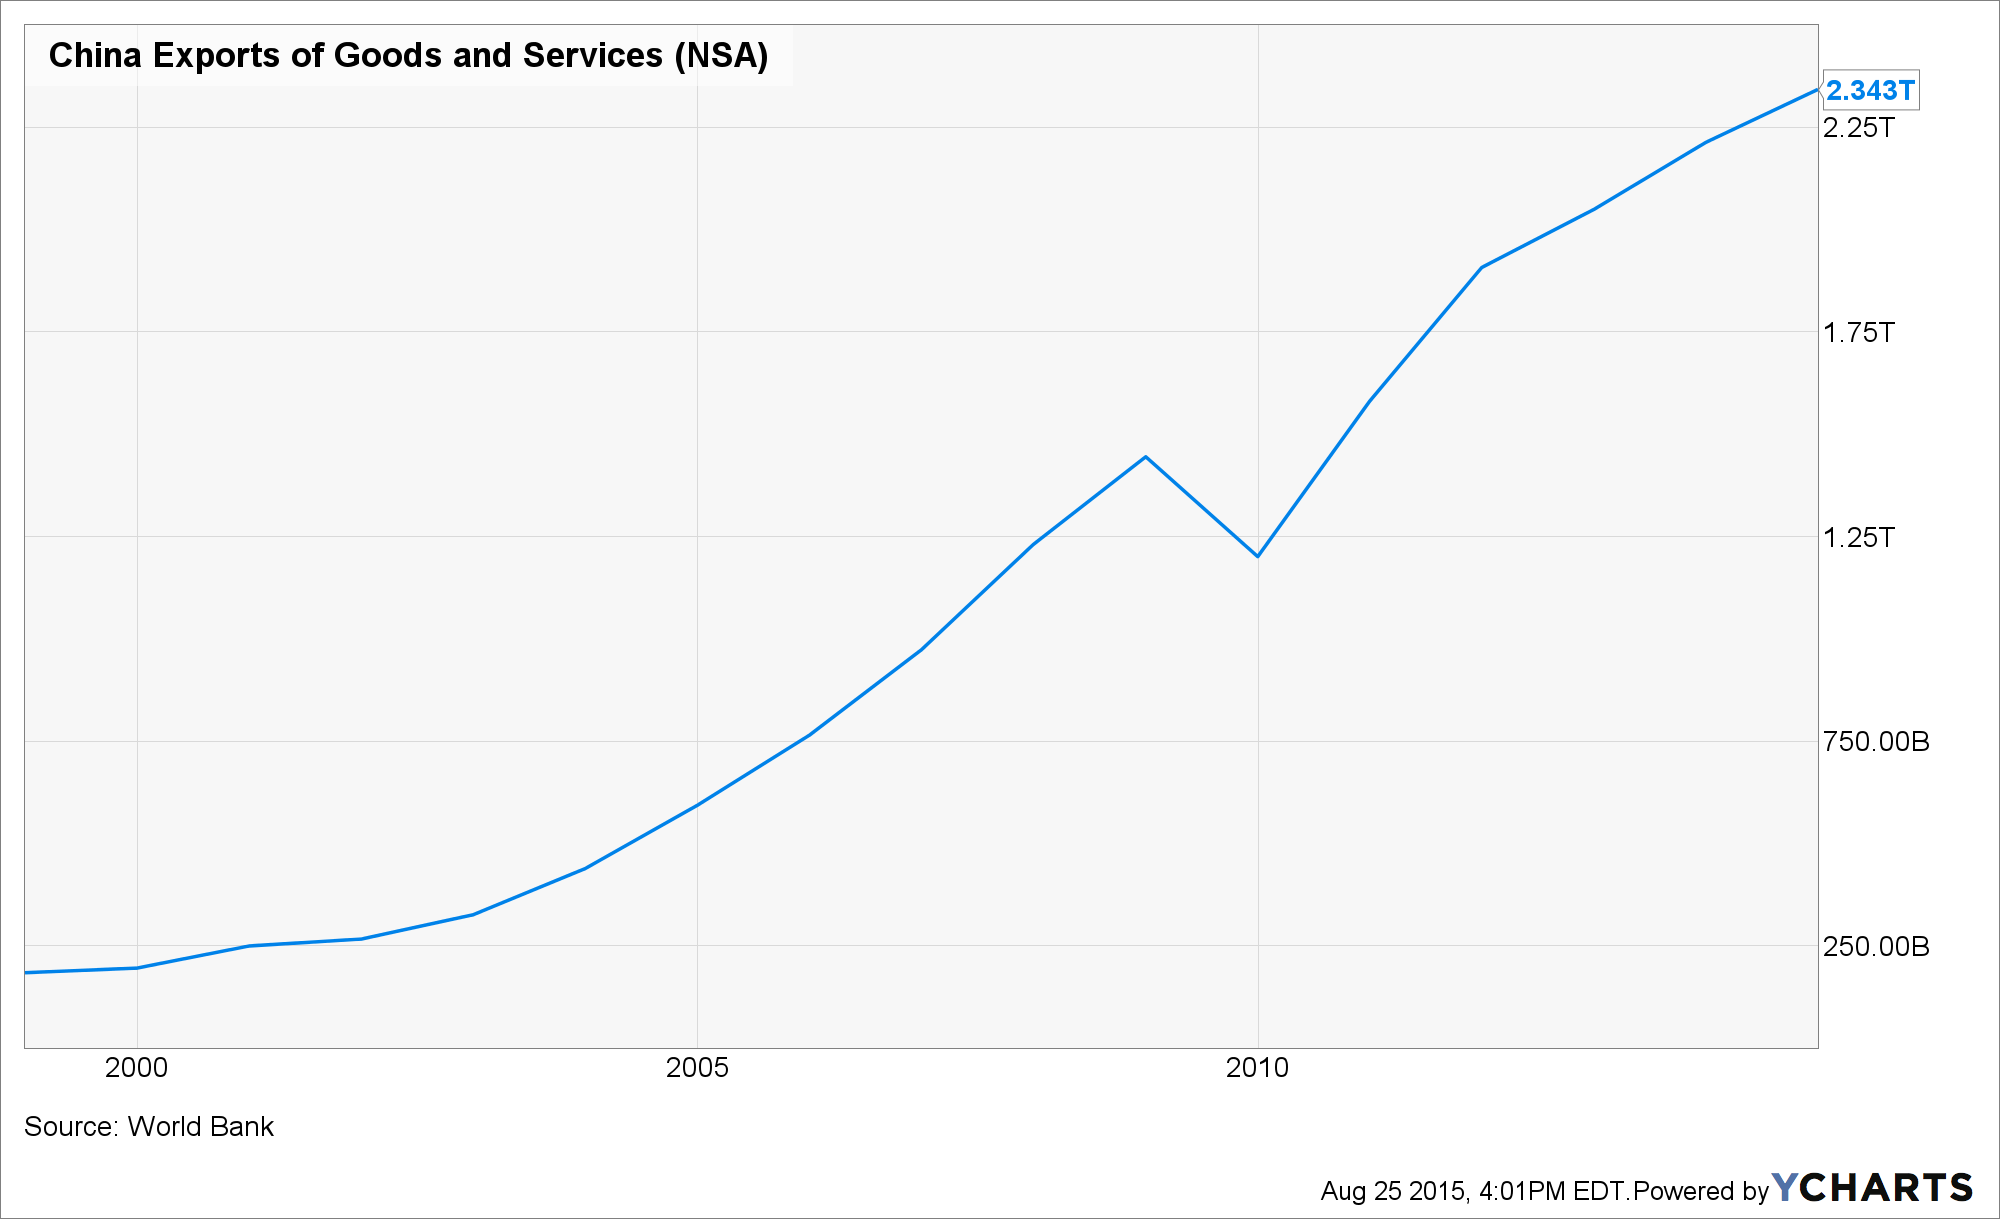 China Exports of Goods and Services Chart